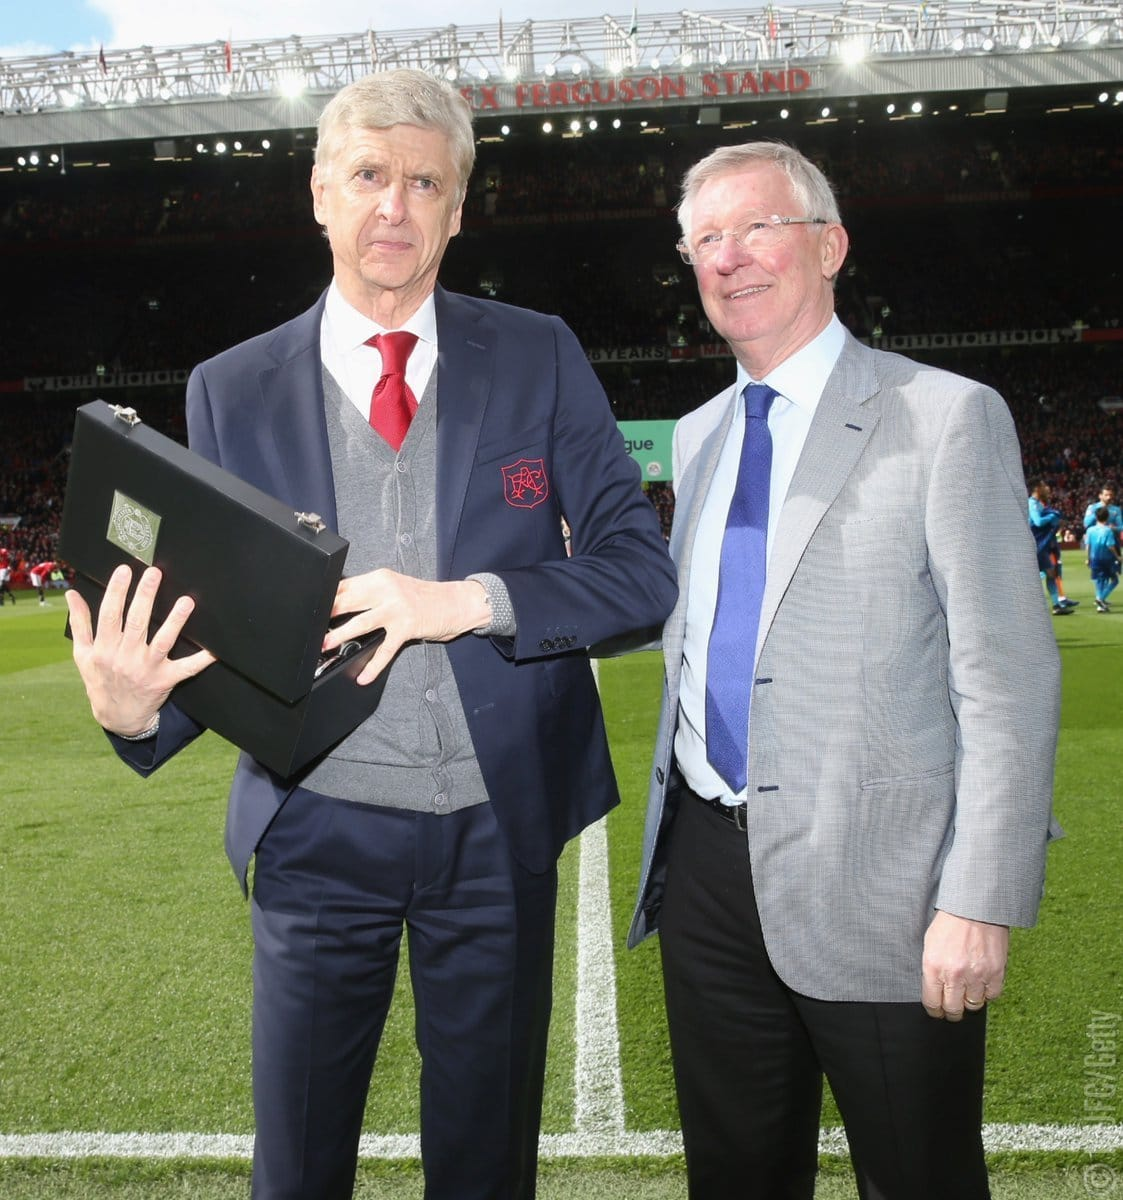 Arsene Wenger presented with a gift by Sir Alex Ferguson at Old Trafford